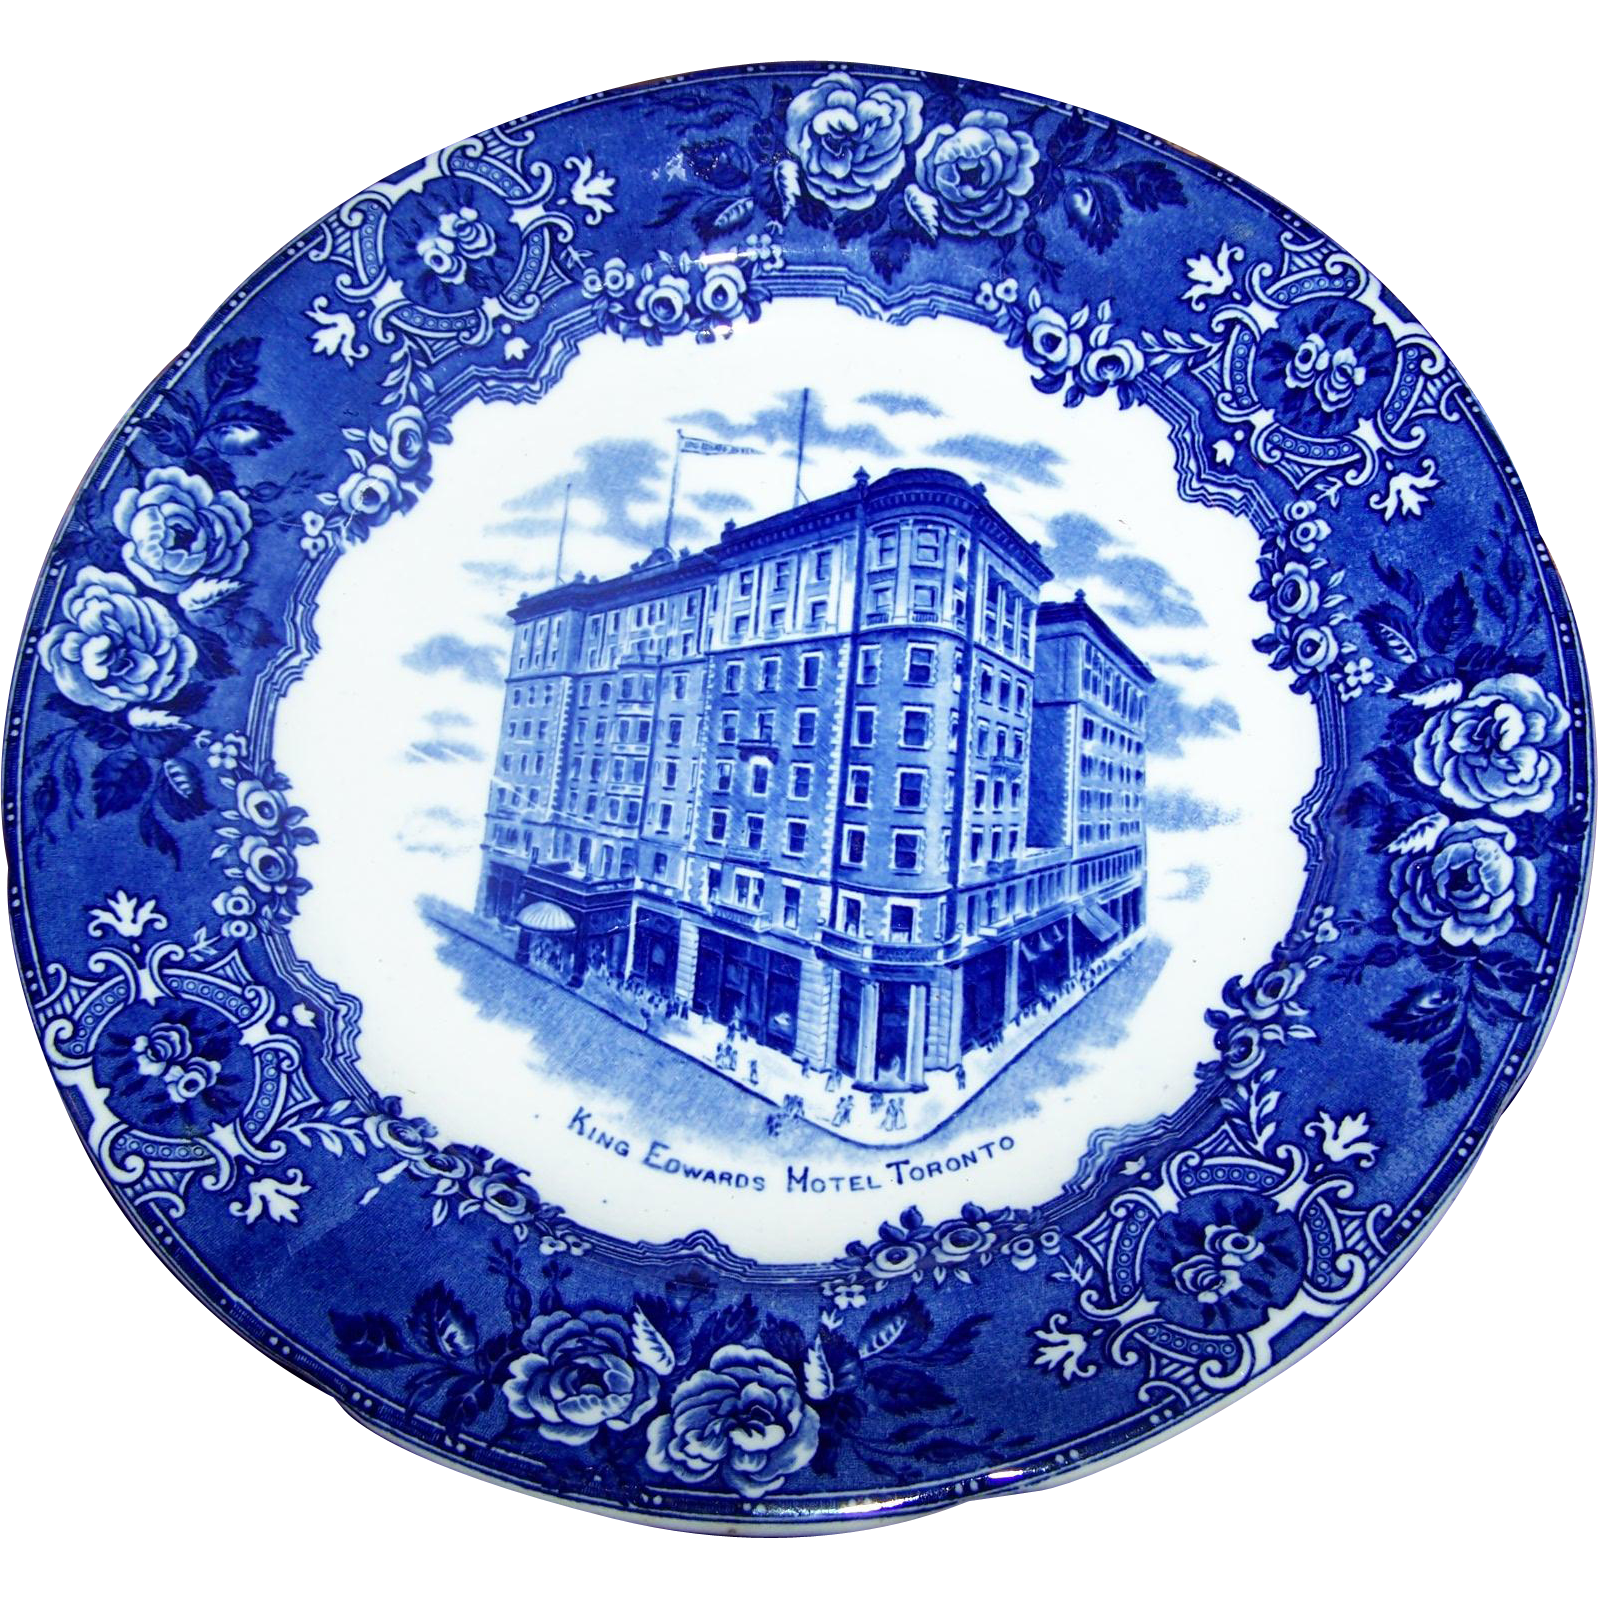 Souvenir Plate  King Edward Hotel Toronto Canada Blue Transferware  George Jones & Sons  Crescent China England